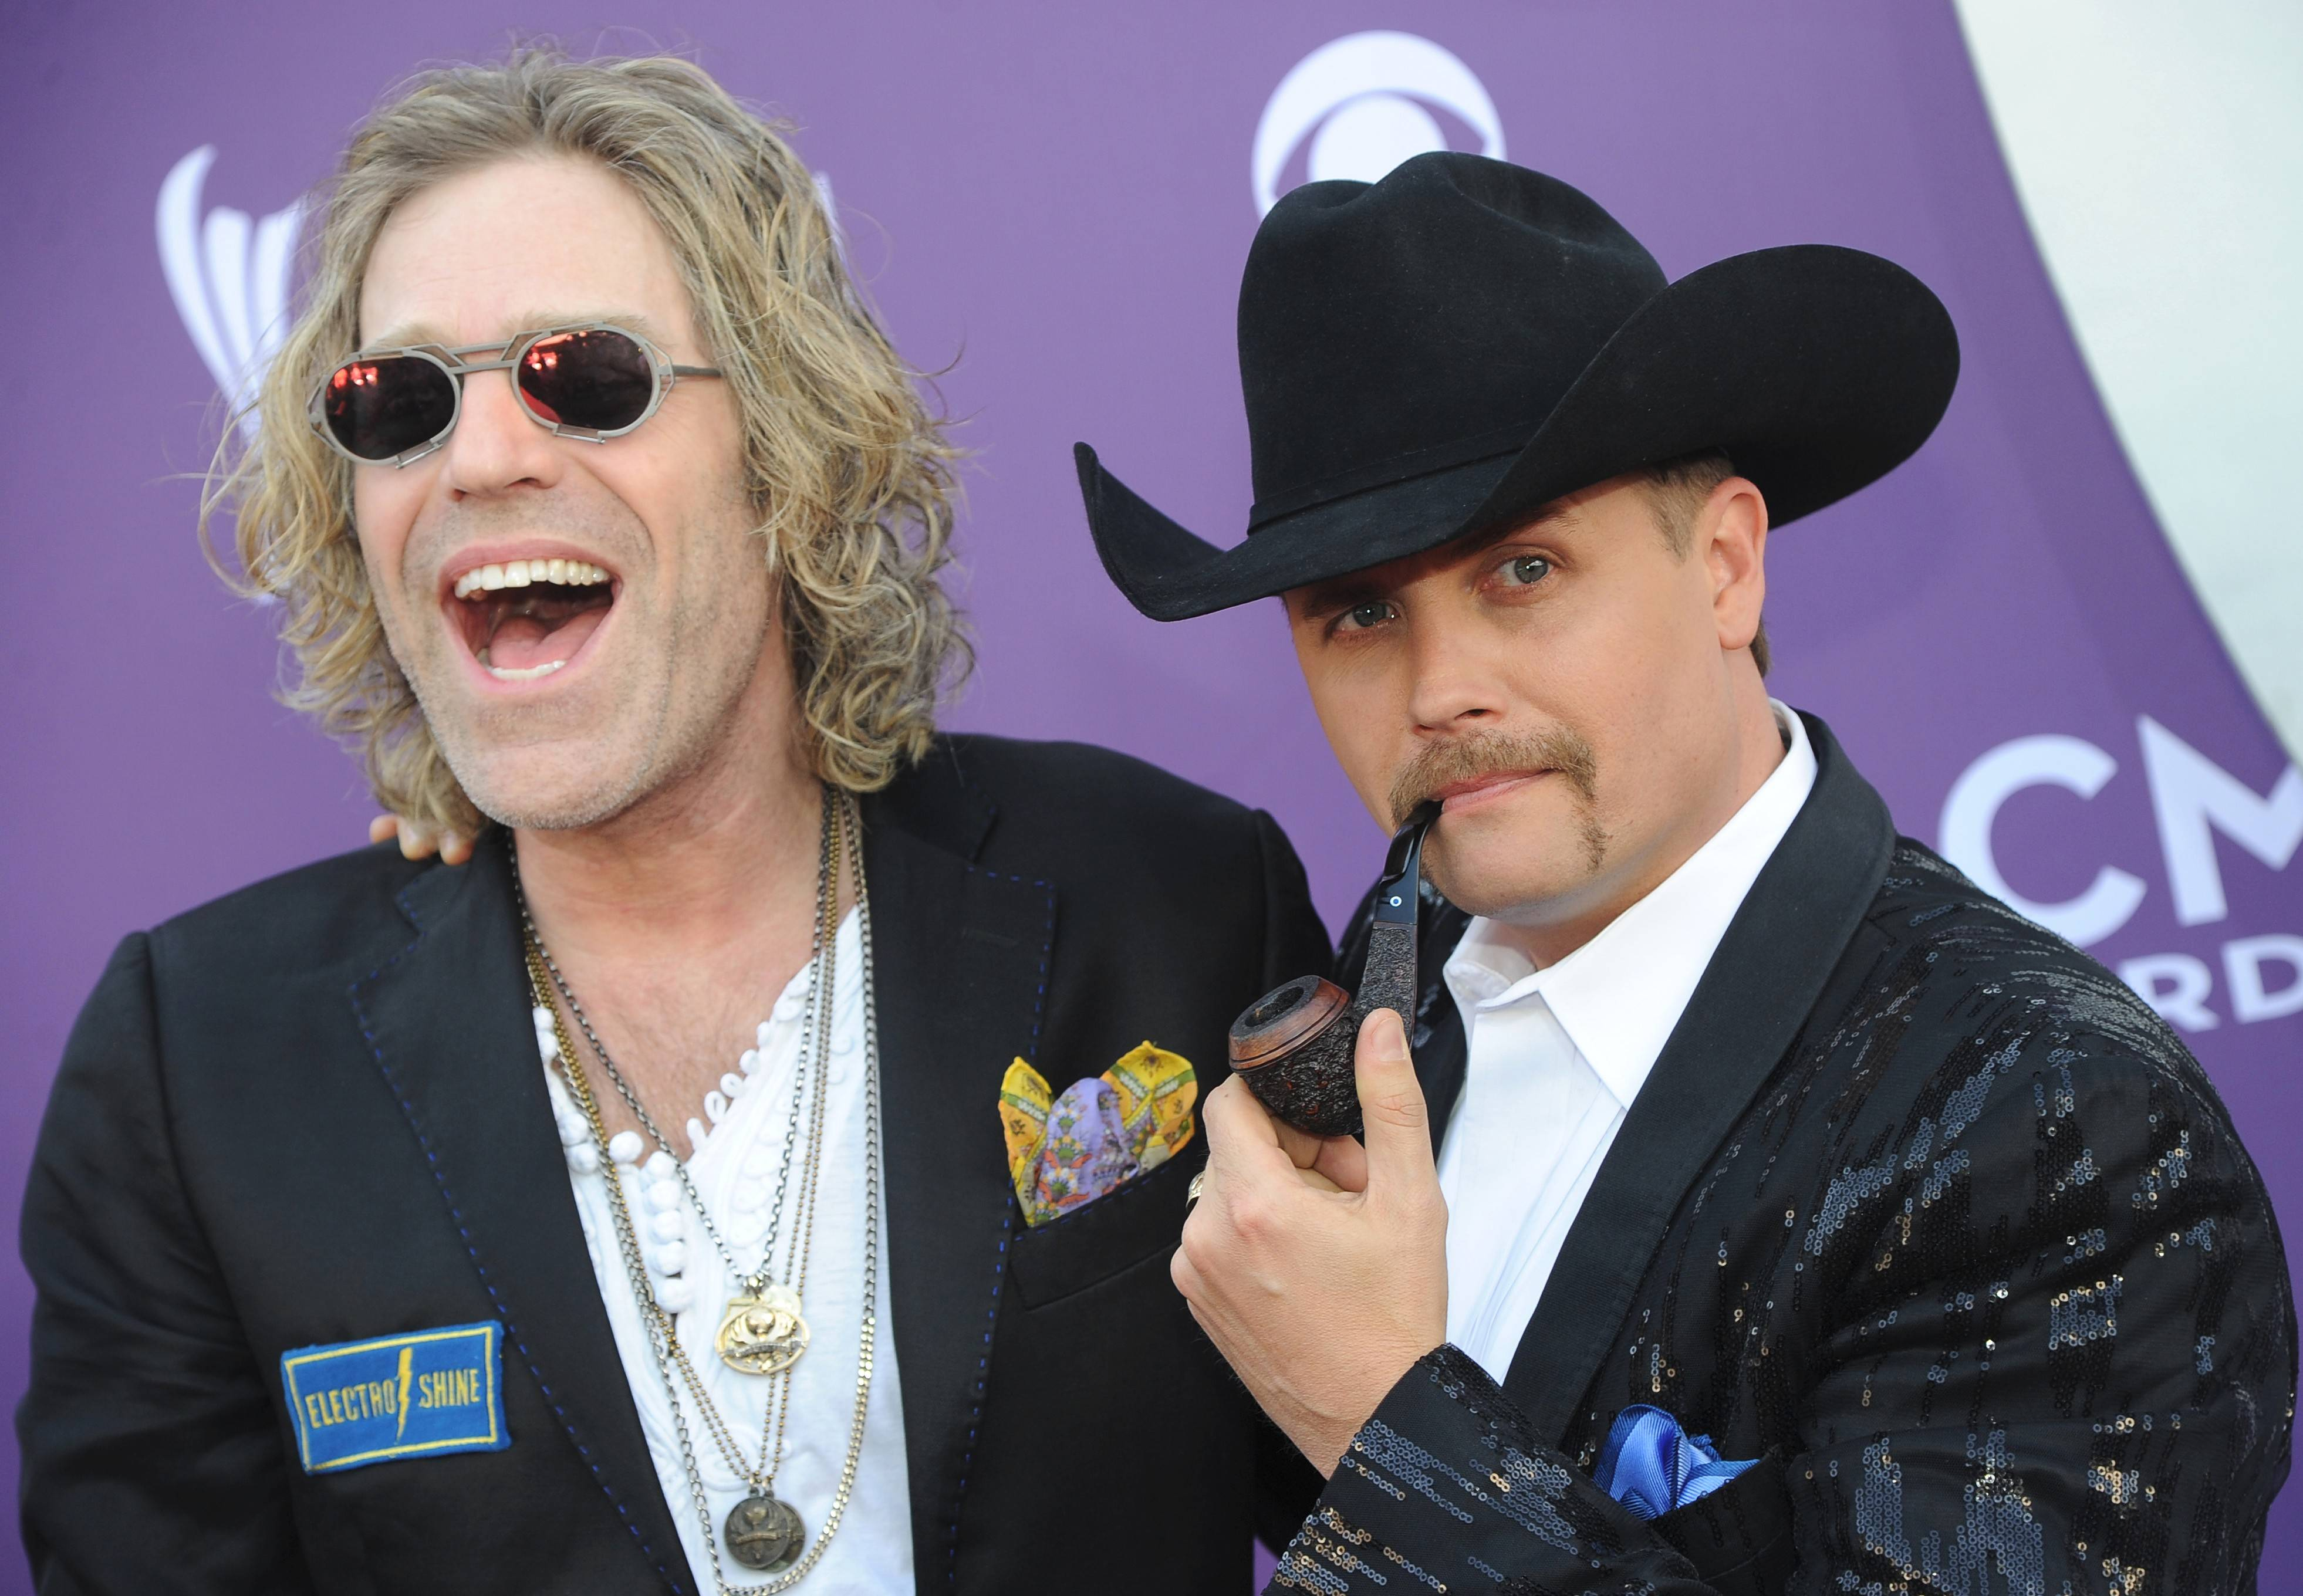 Big & Rich -- Big Kenny, left, and John Rich -- will headline Austin's Fuel Arena on Saturday, Feb. 22.